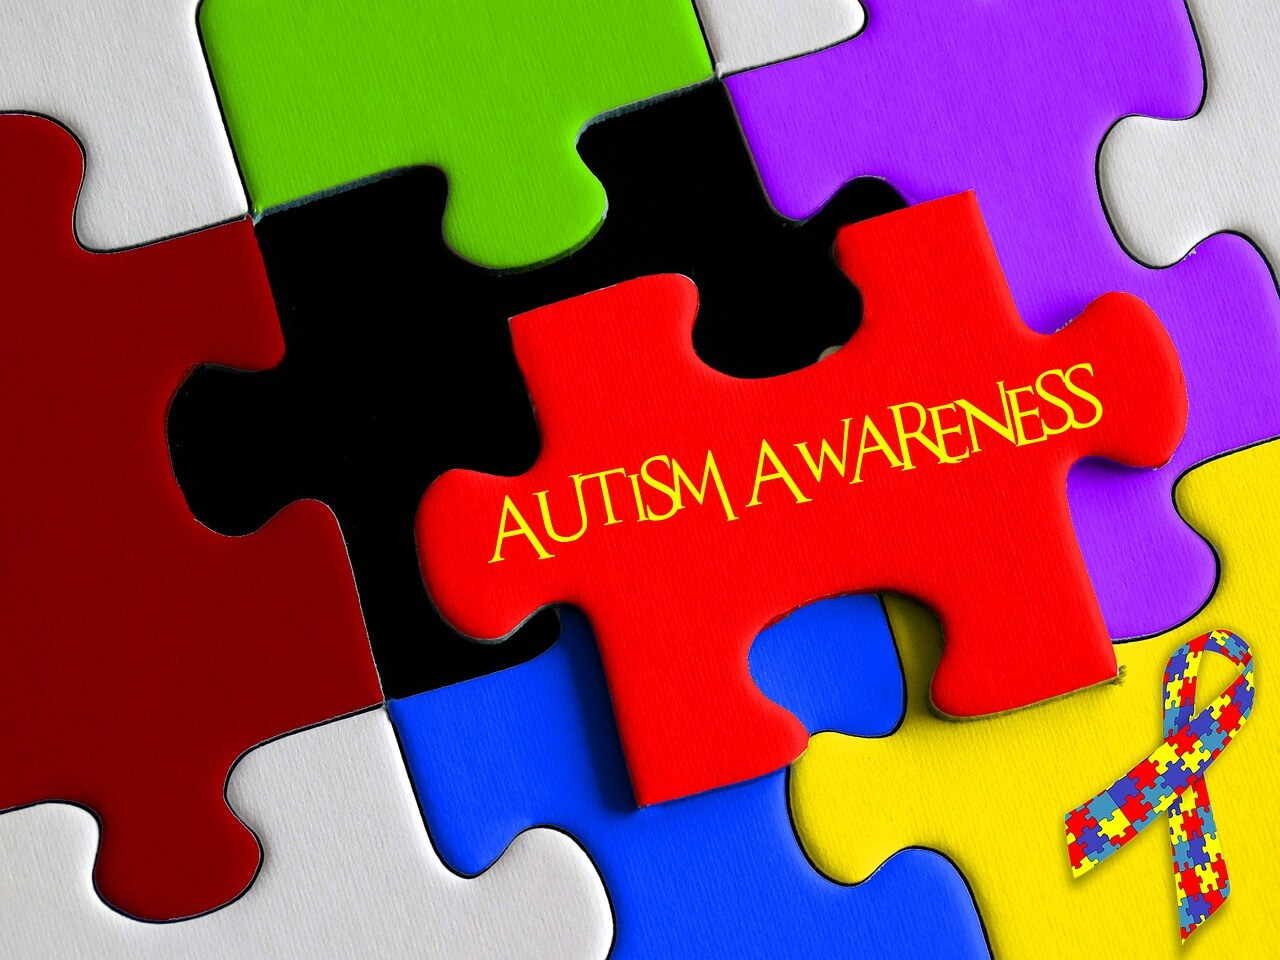 Autism Speaks Updates Their Mission >> 15 Great Ways To Spread Autism Awareness Betterhelp